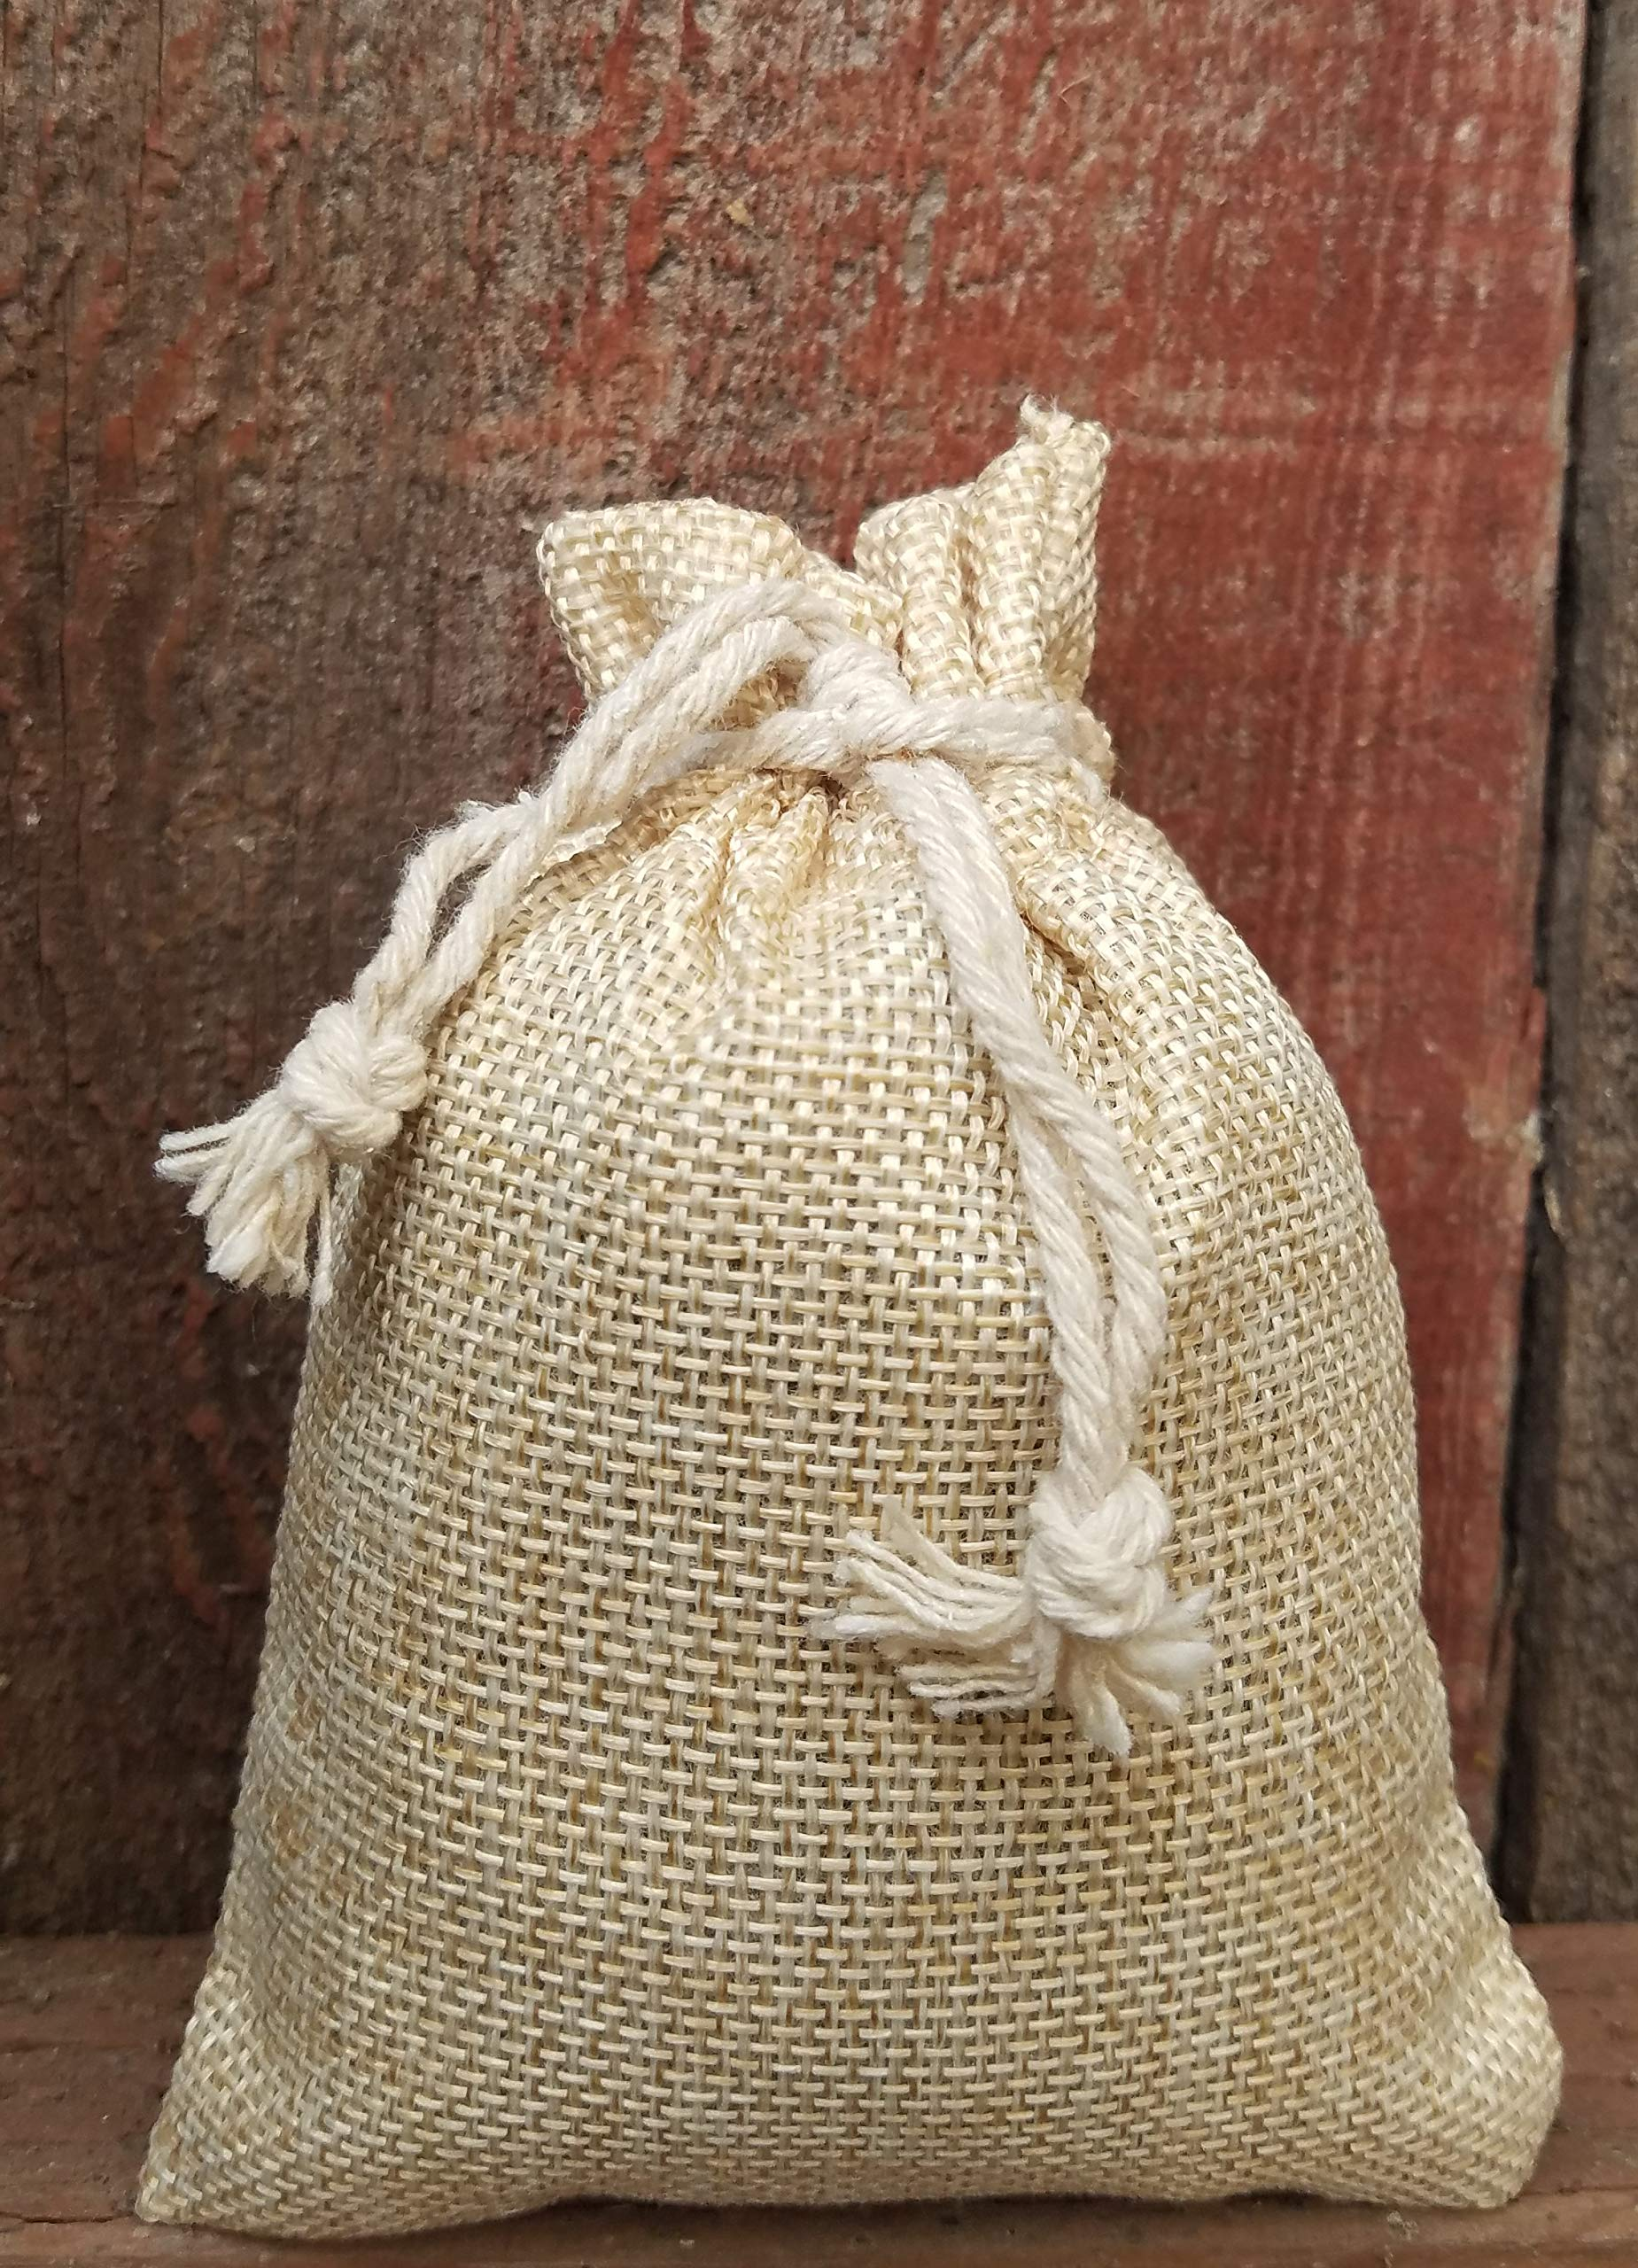 Lavender Scent Sachets, 32 Grams of Fresh, Naturally Dried, Fragrant Lavendula in Burlap Bags (3.7''x5.3''), (Set of 3 Colors: tan, Grey & Ethnic Print) Harvested in Northern California by Generic (Image #5)